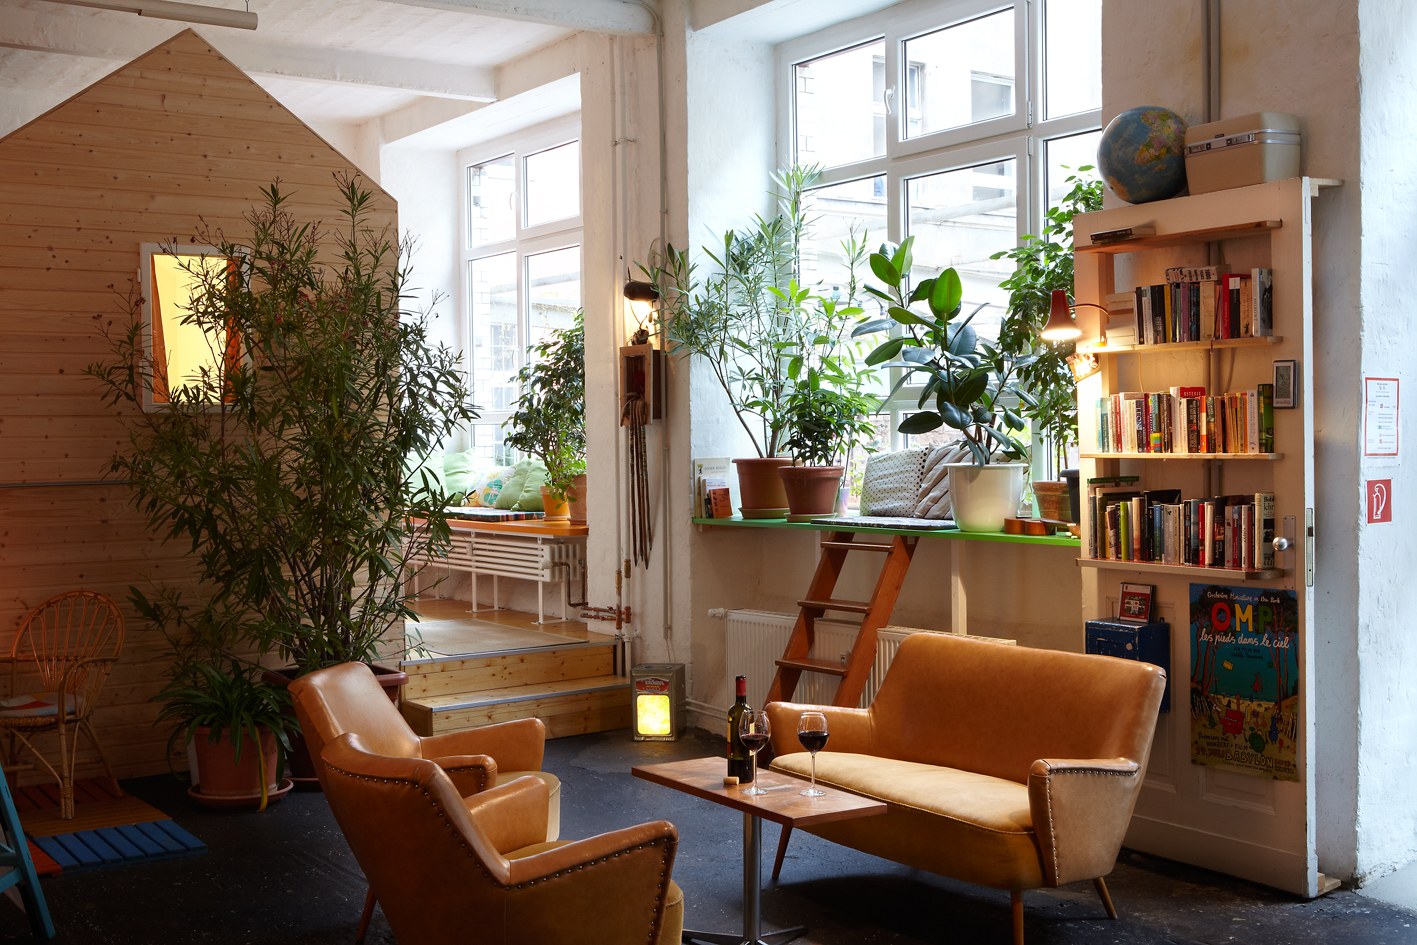 Huettenpalast in the MYKITA Berlin Guide: STAY